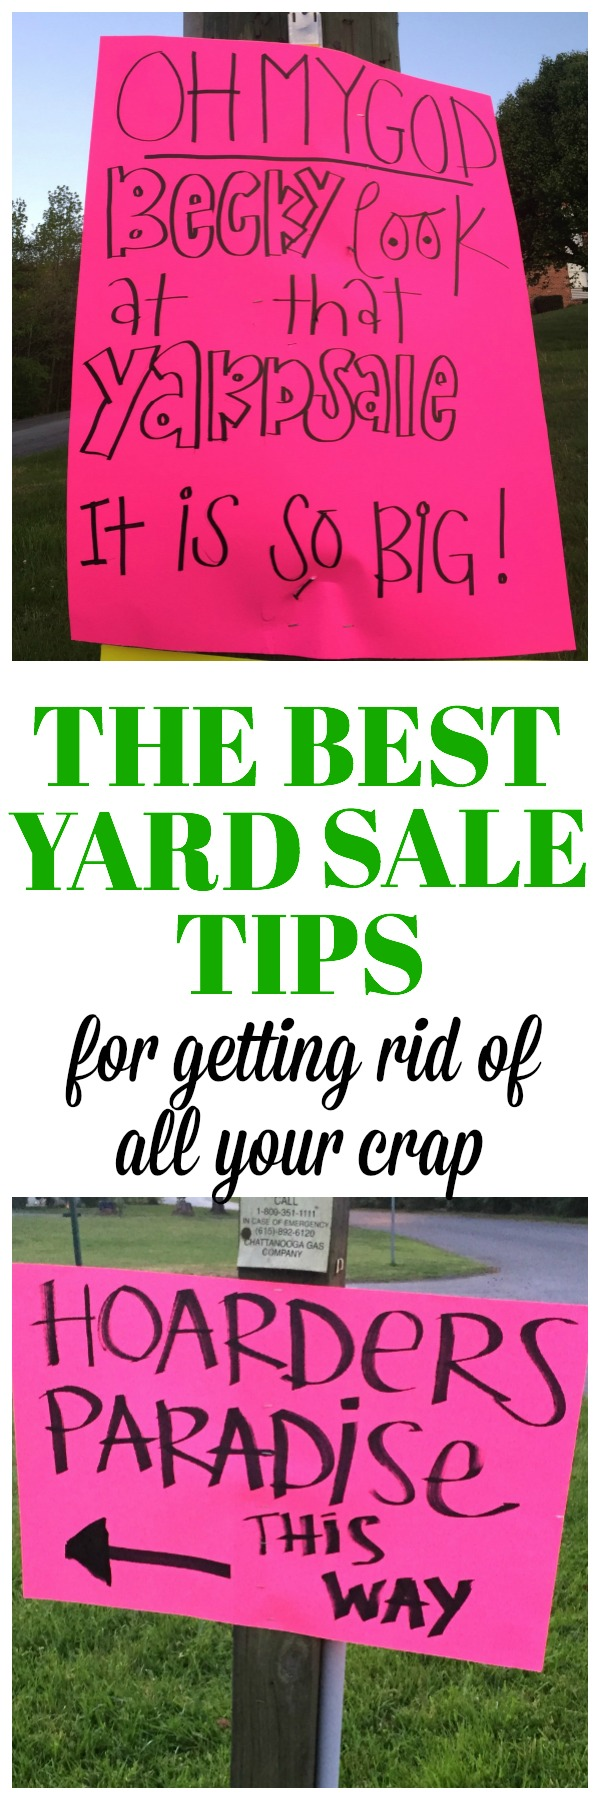 best garage business ideas - The Best Yard Sale Tips To Get Rid of All Your Junk